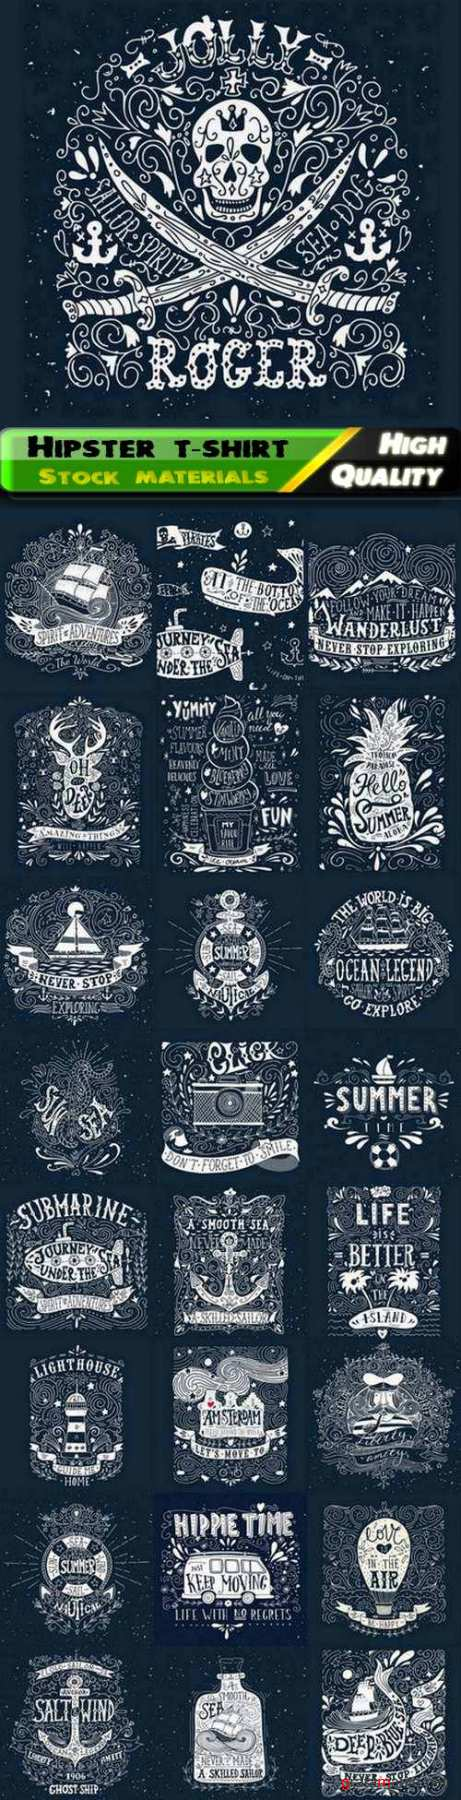 Vintage hipster style label and fashion t-shirt print design - 25 Eps